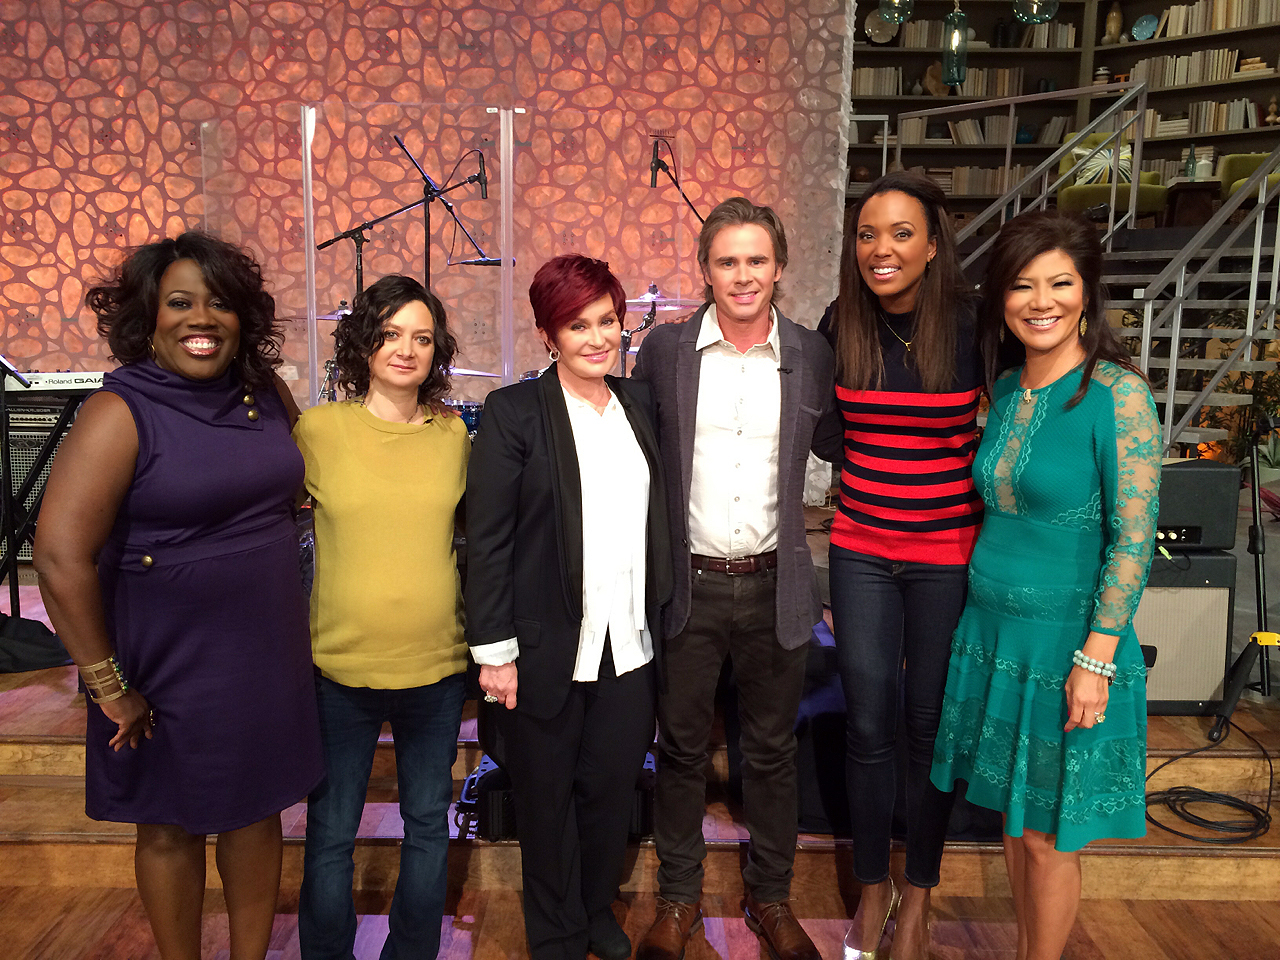 4. The ladies caught up with Sam Trammell.